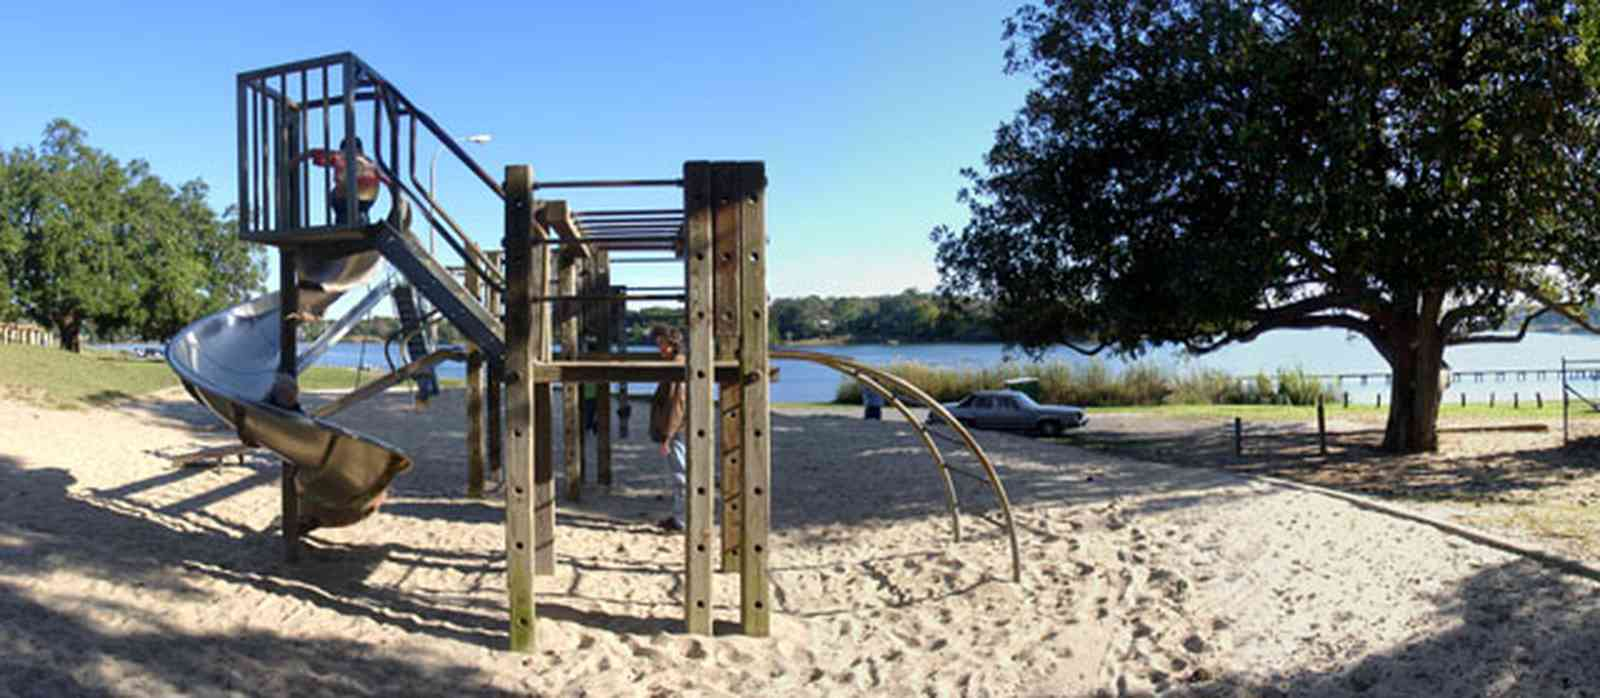 East-Hill:-Bayview-Park_11.jpg:  gulf coast, magnolia tree, oak tree, slide. bayou texar, sand, playground equipment